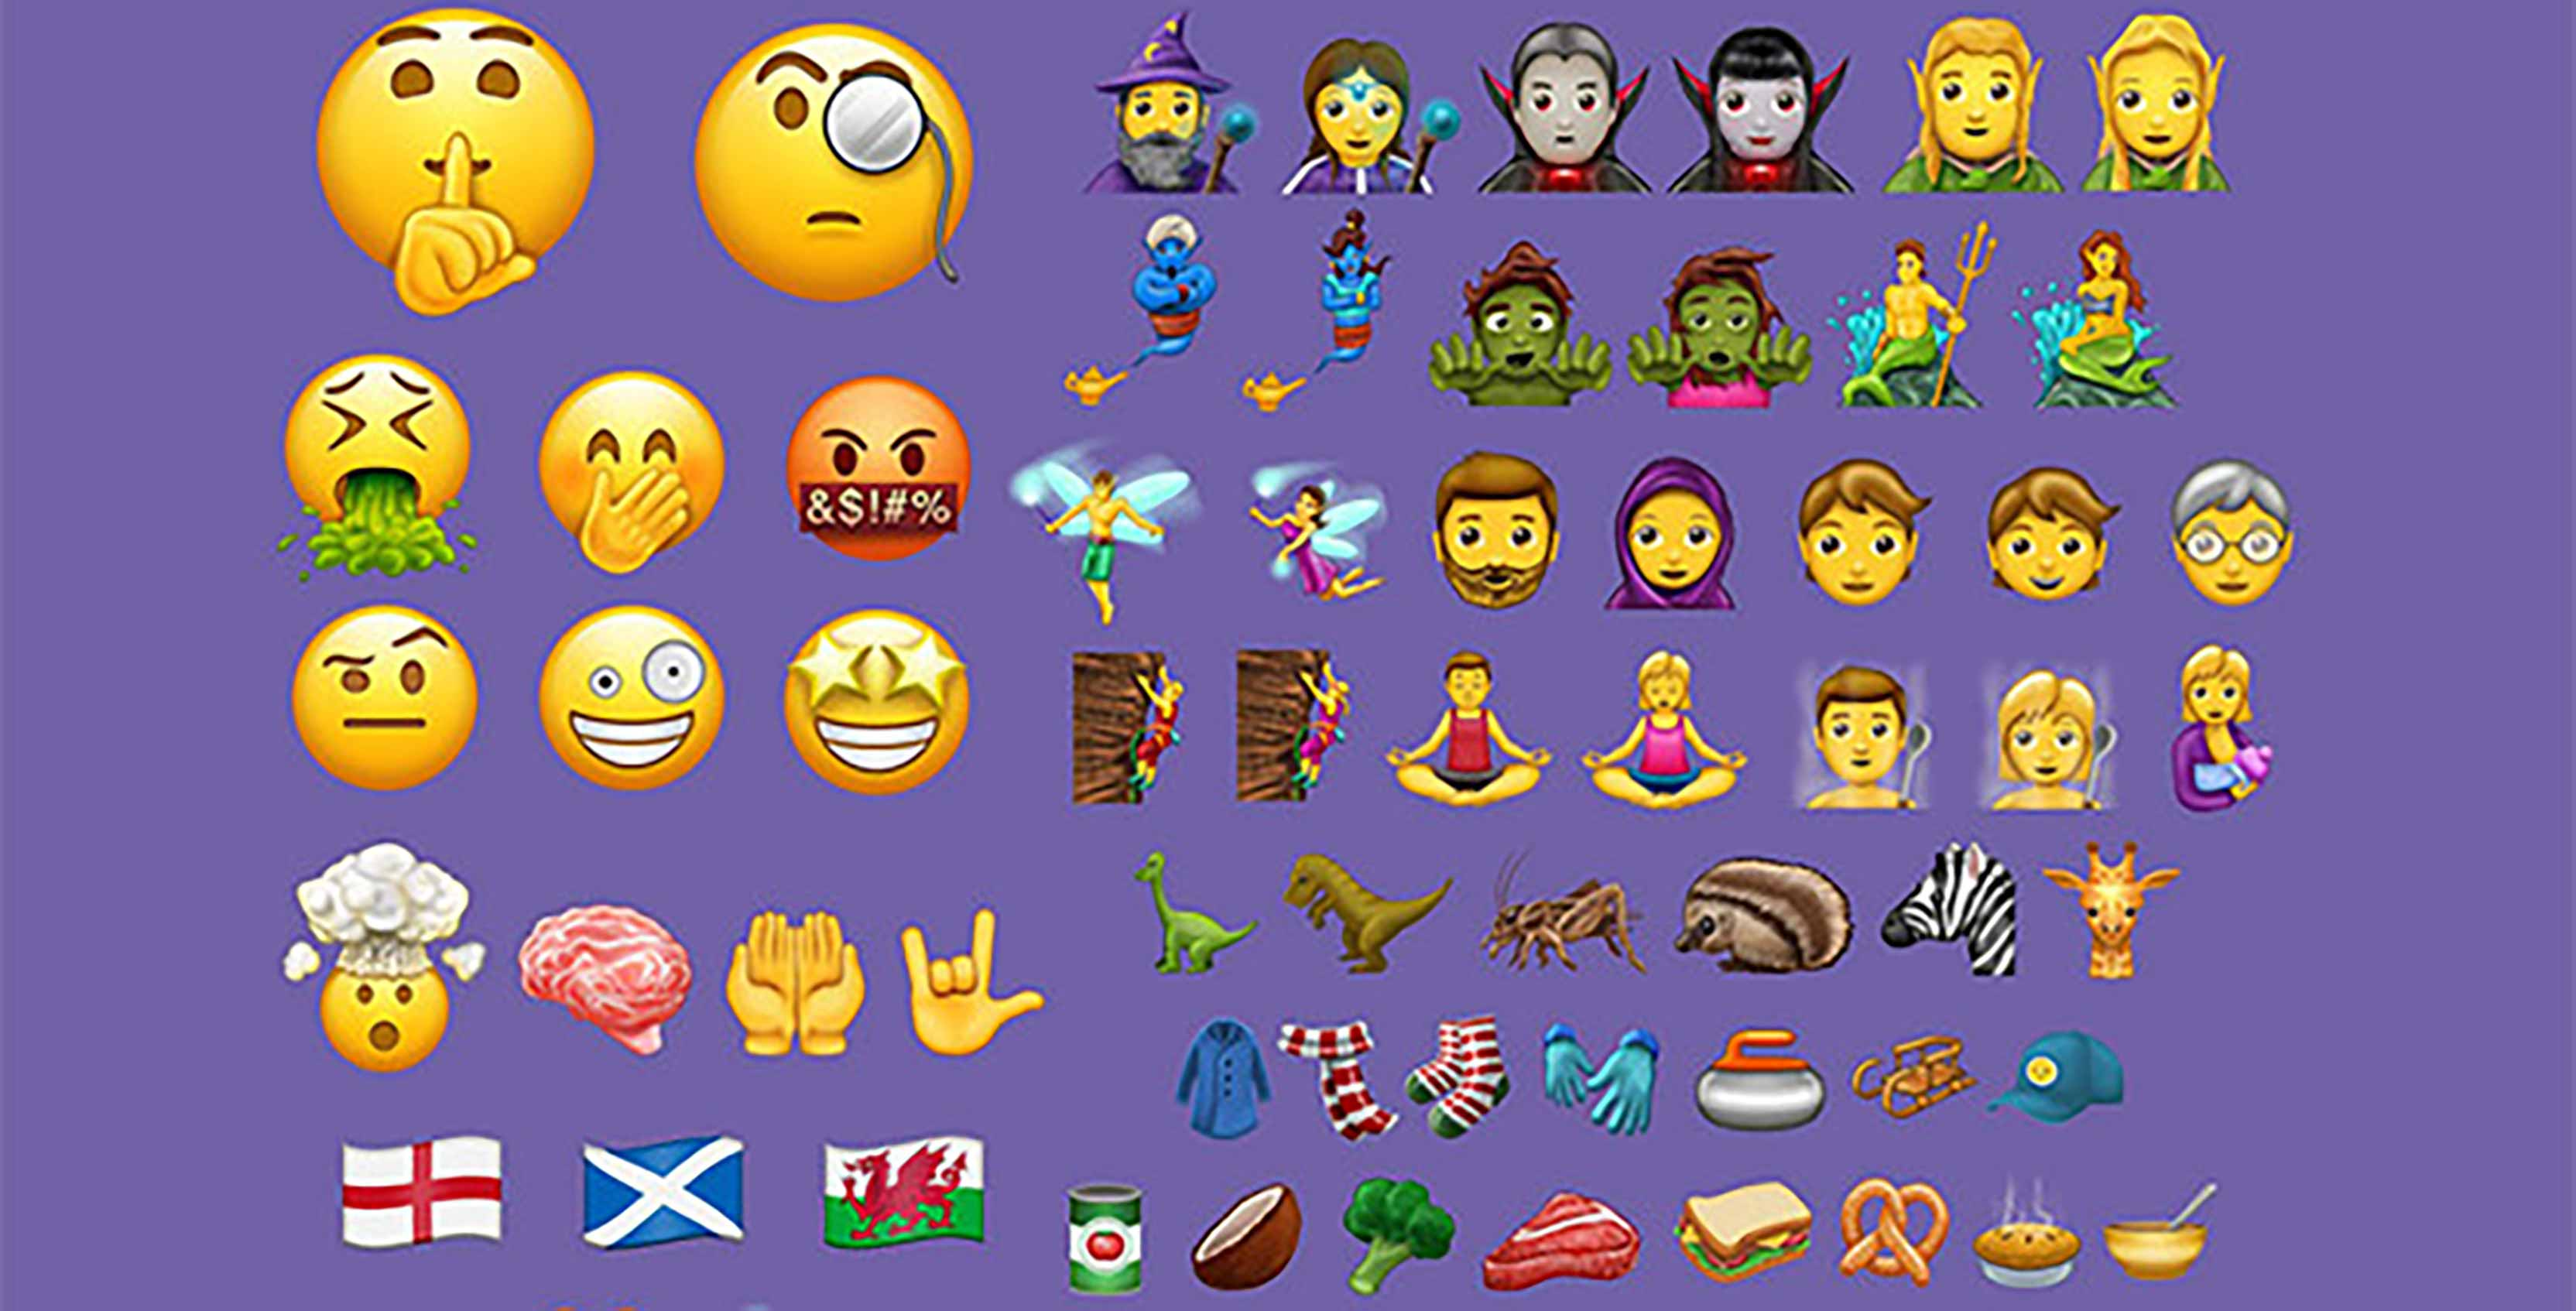 Emoji Unicode 10 update